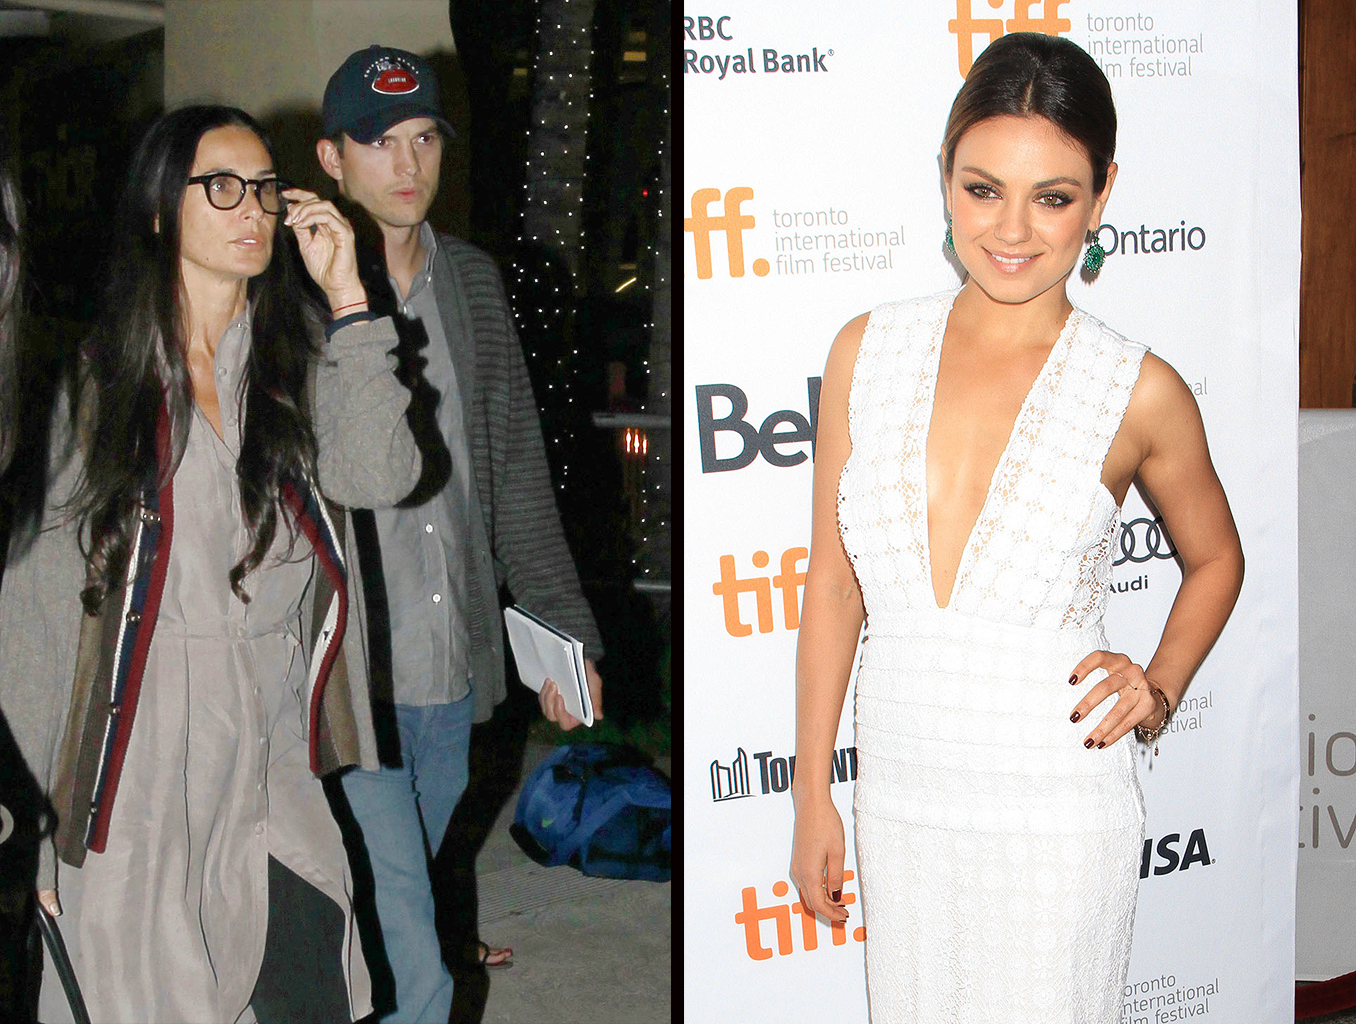 Kutcher and Moore at the airport and Kunis at the Toronto FIlm Fest. (PacificCoastNews.com/FameFlynet)